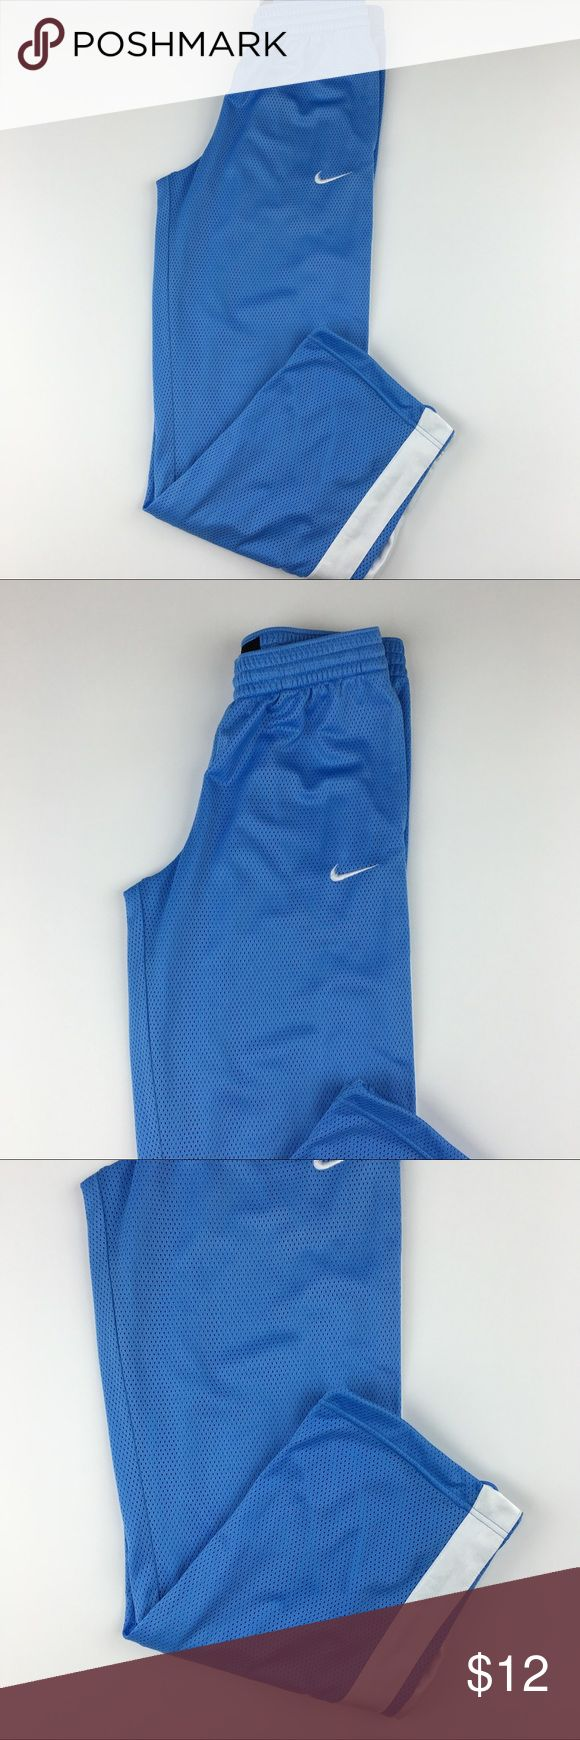 Nike basketball pants Sz Medium Nike basketball pants Sz Medium. Gently worn in great condition except for stains on back bottom of pants. Nike Pants Sweatpants & Joggers